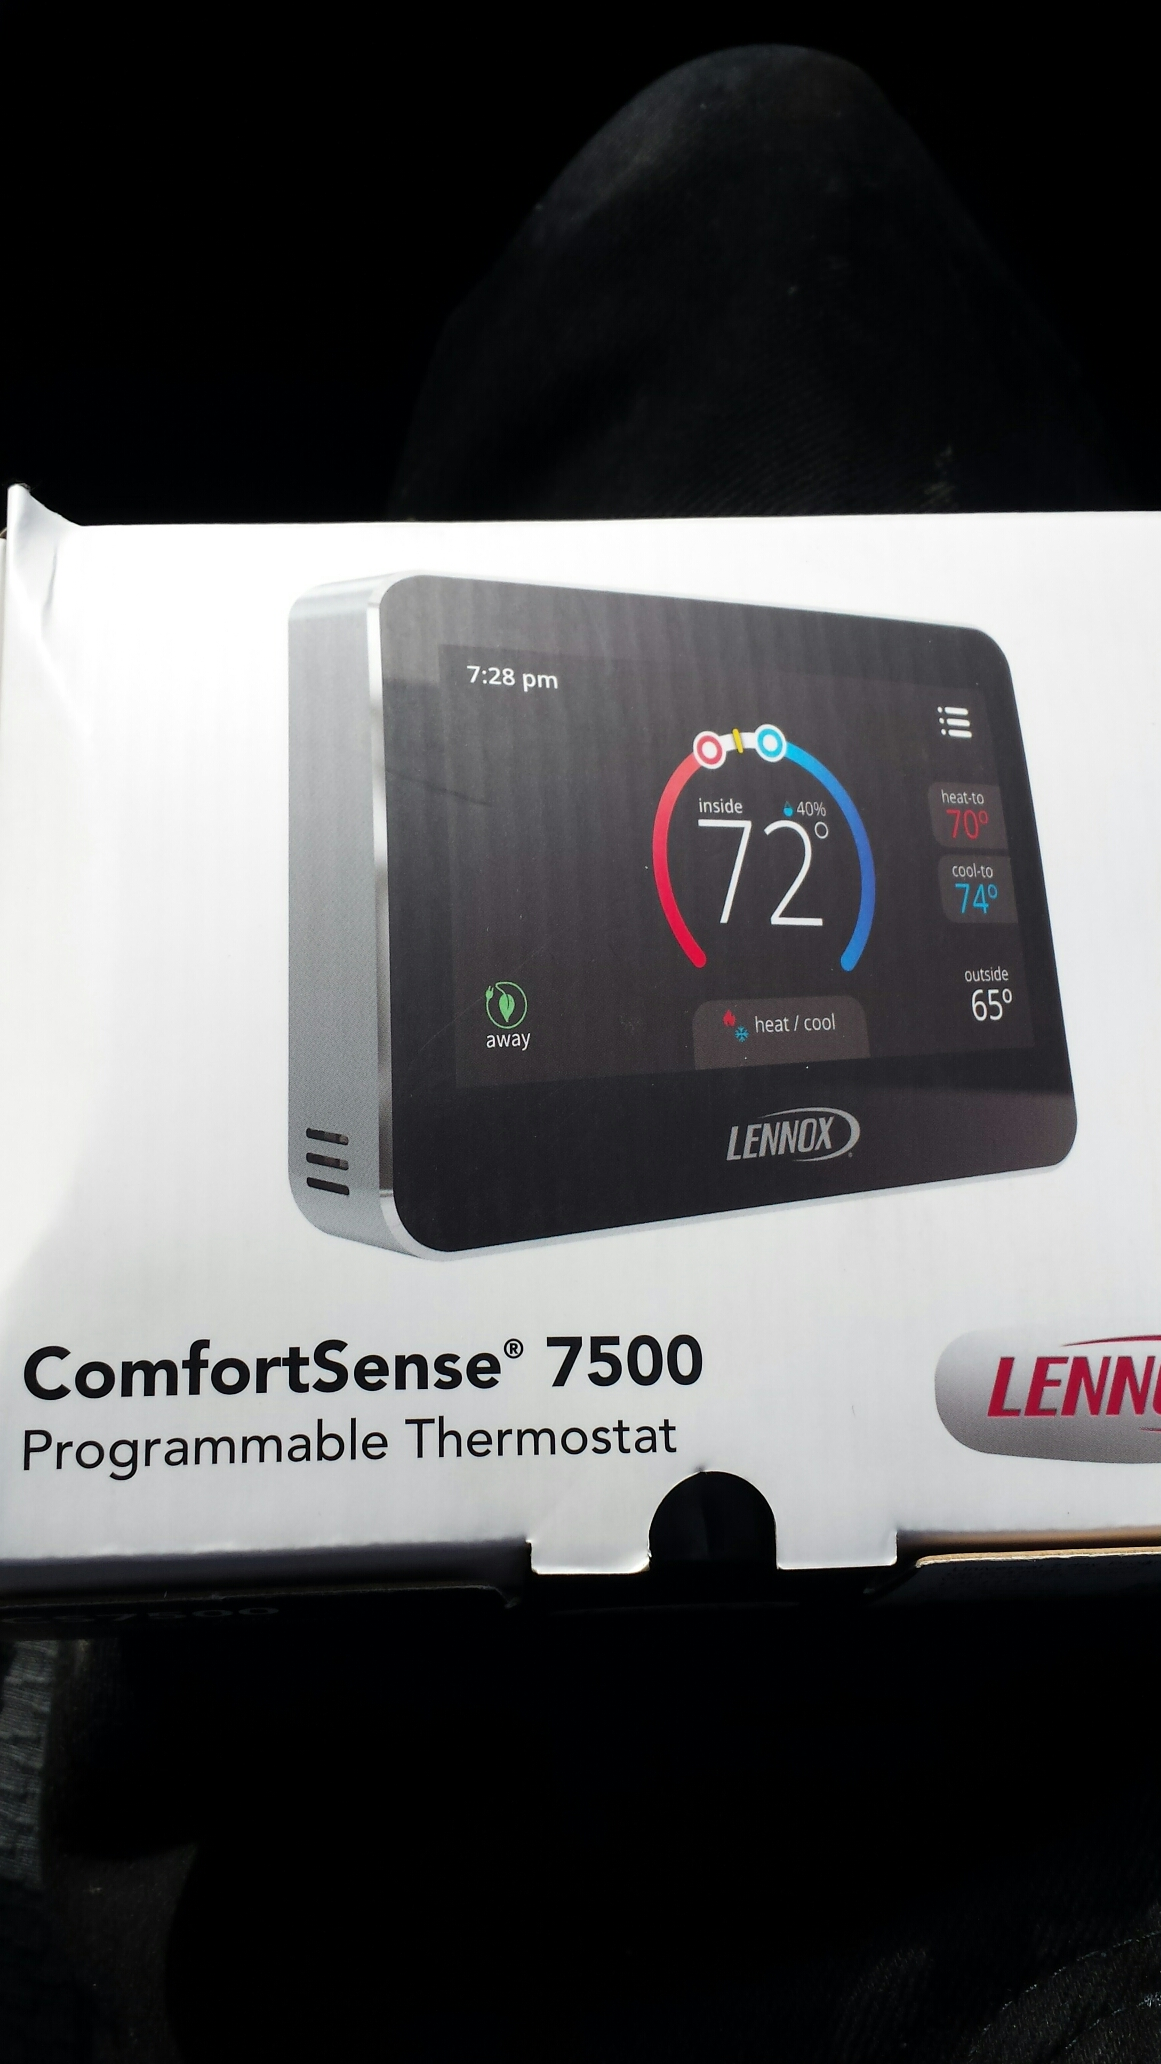 Yorkville, WI - Just installed this new lennox comfortsense 7500 thermostat.